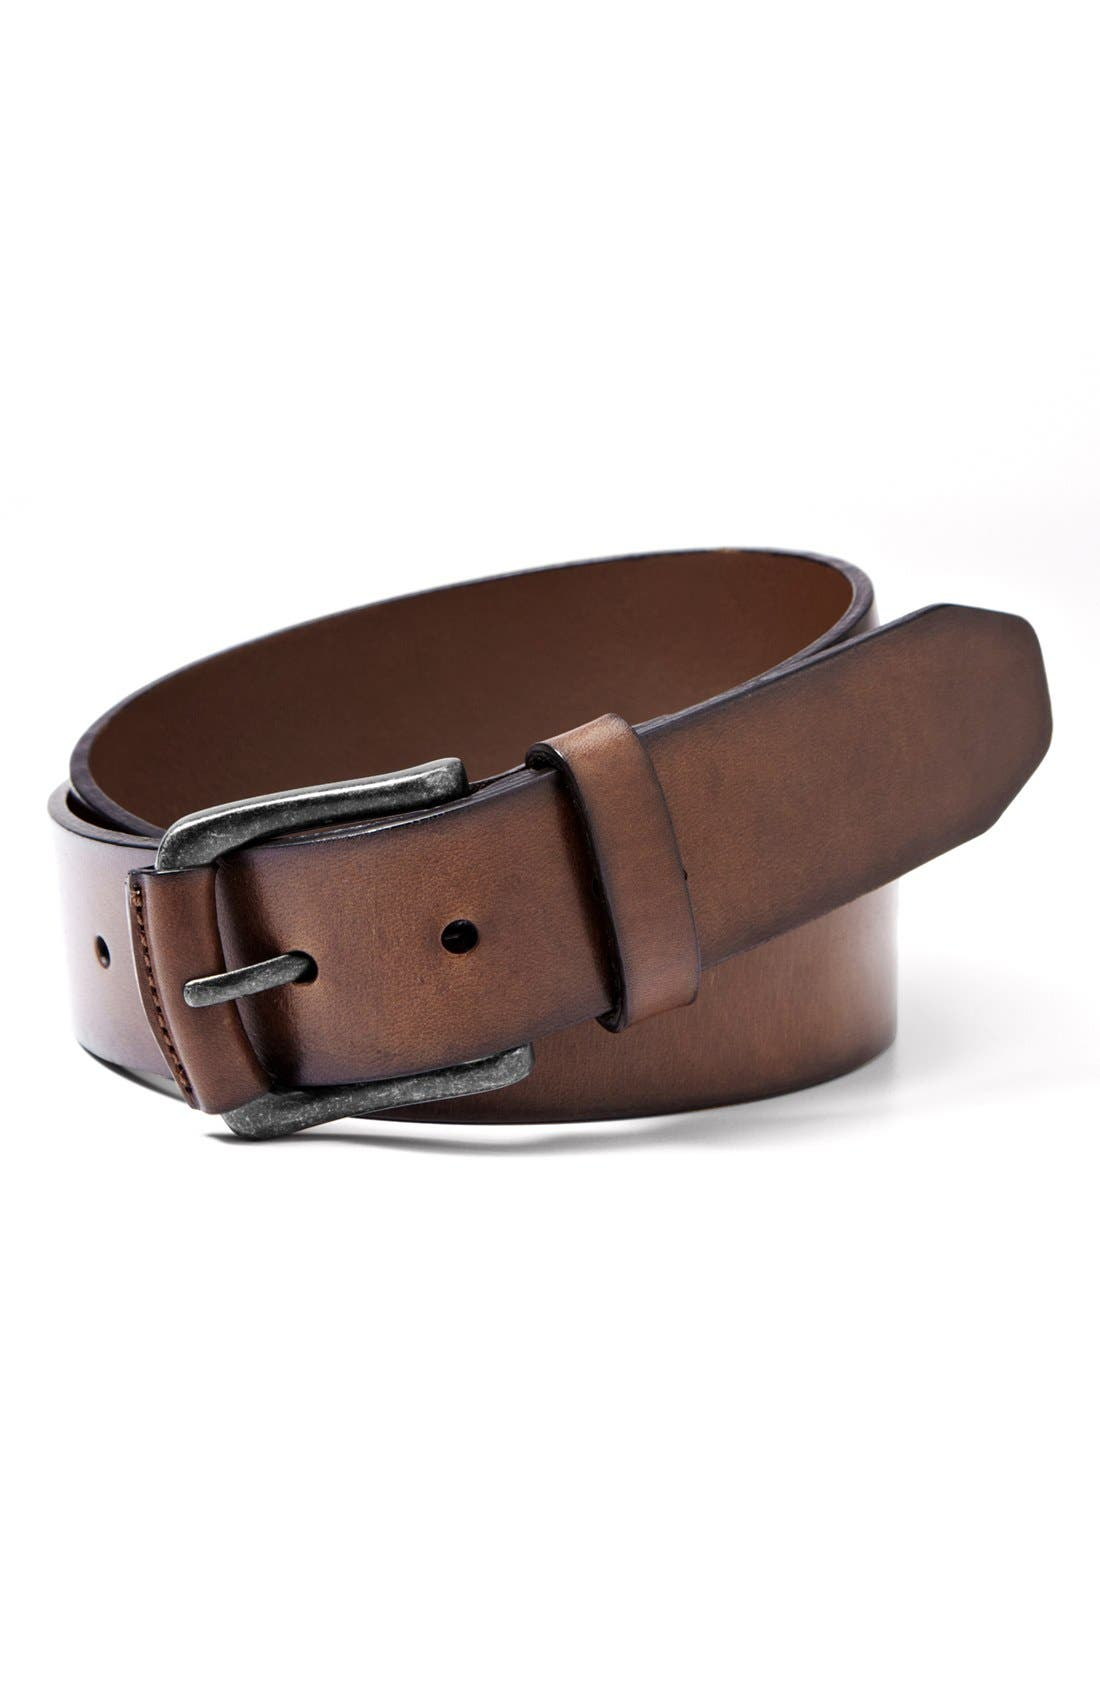 Alternate Image 1 Selected - Fossil 'Carson' Leather Belt